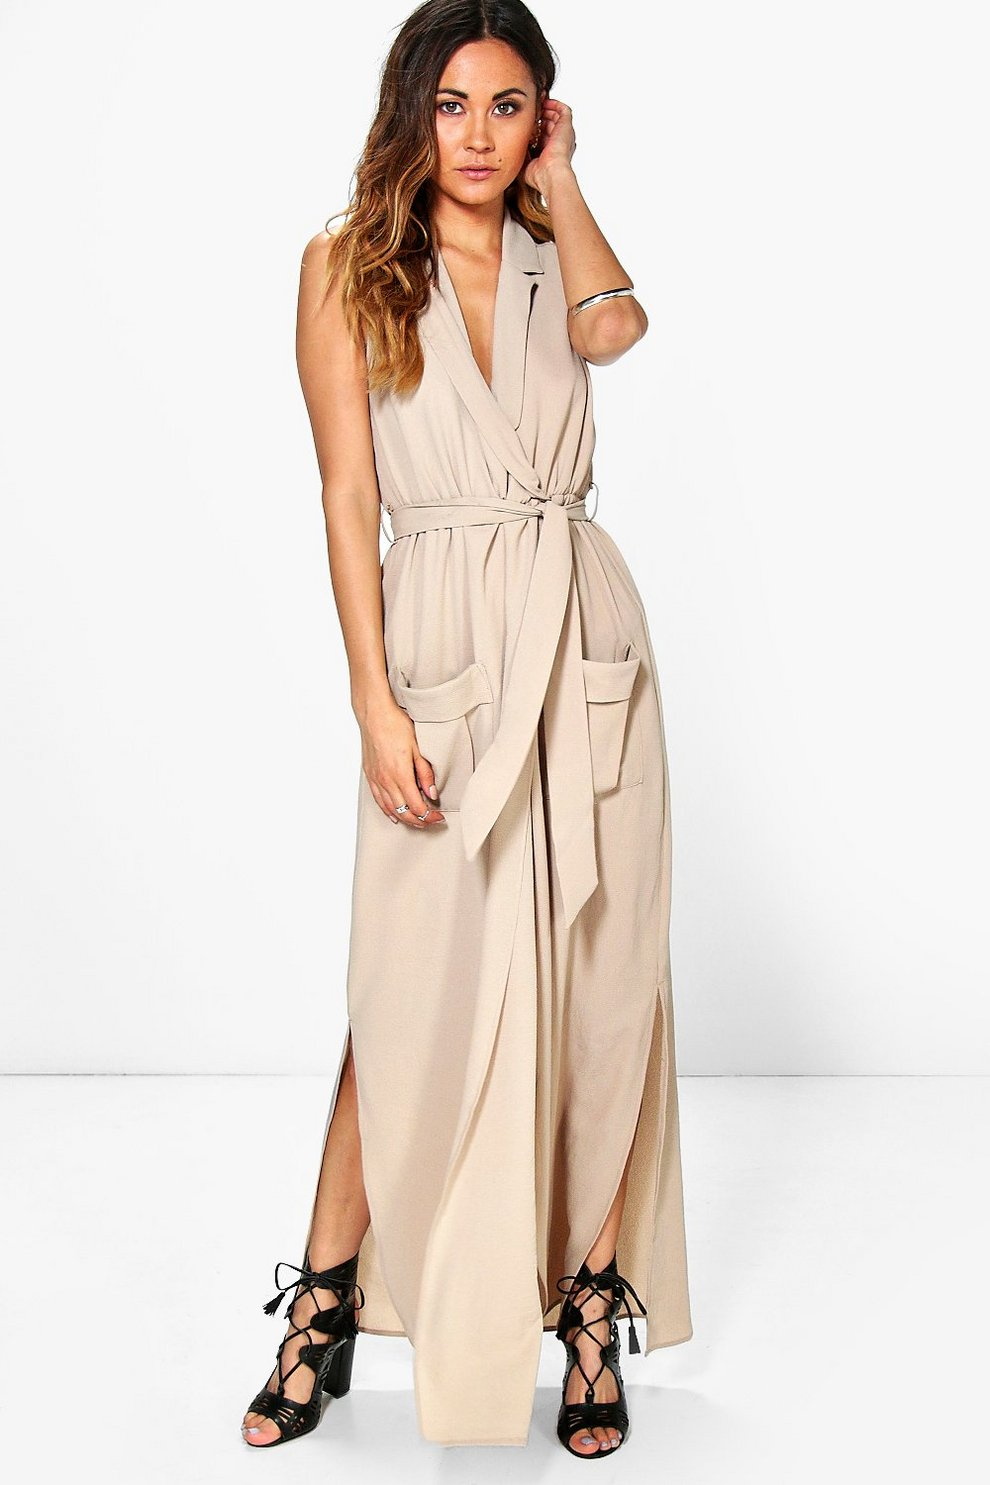 df080478a80 Madeline Sleeveless Belted Maxi Dress. Womens Stone Madeline Sleeveless  Belted Maxi Dress. Hover to zoom